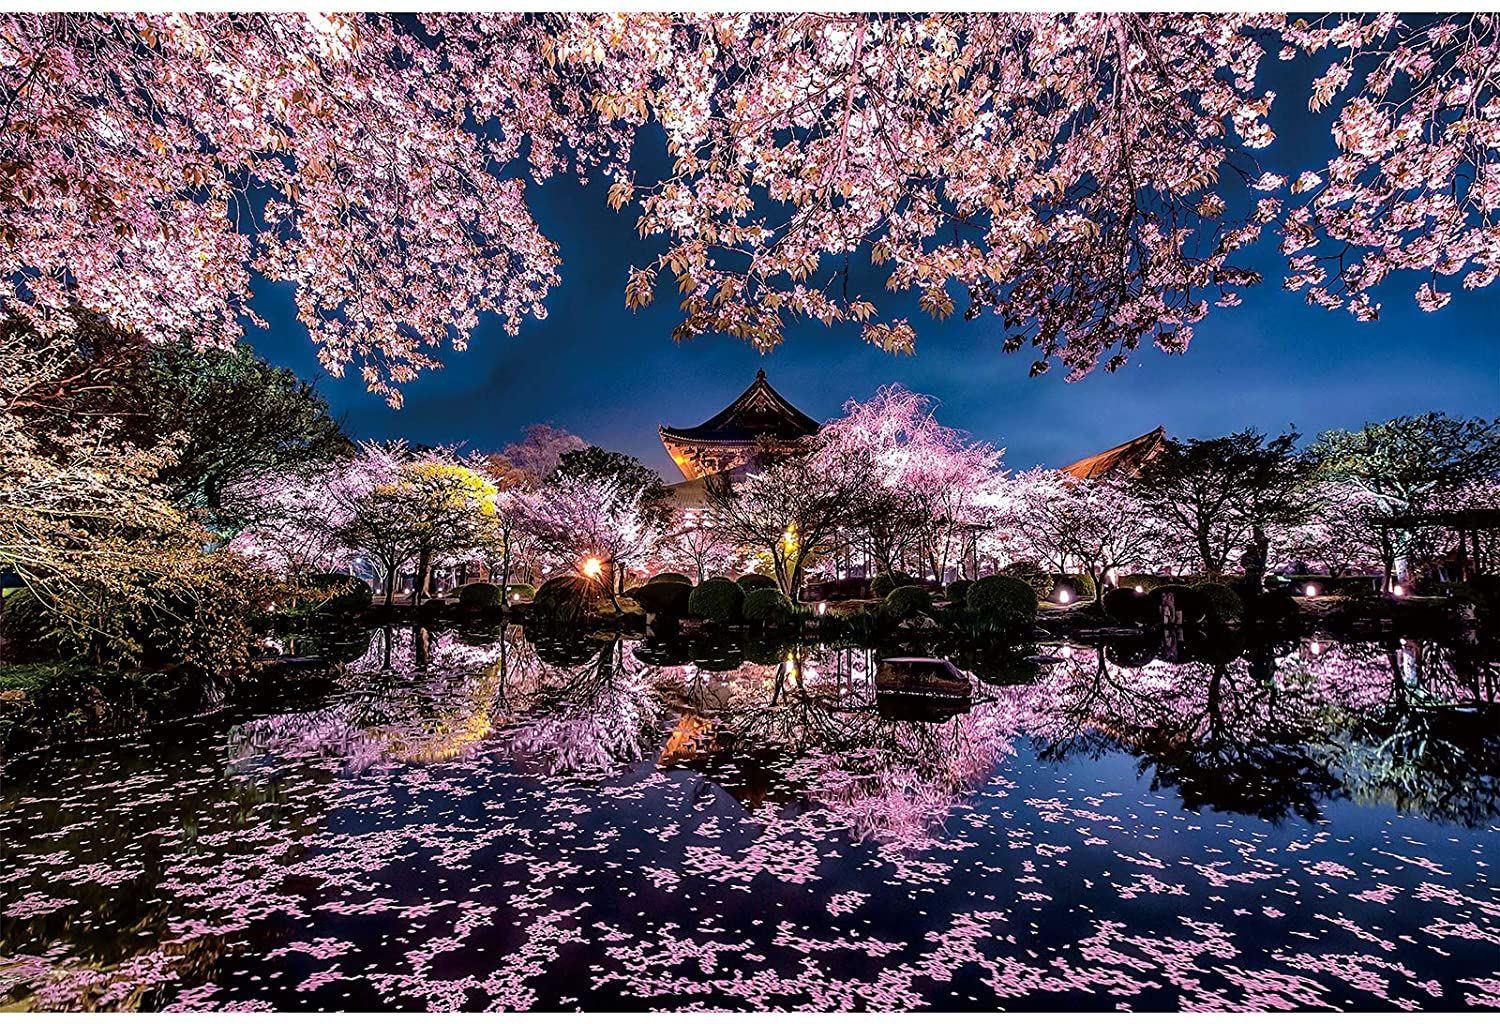 Ingooood- Jigsaw Puzzles 1000 Pieces for Adult- Tranquil Series- Cherry Blossoms on The Lake